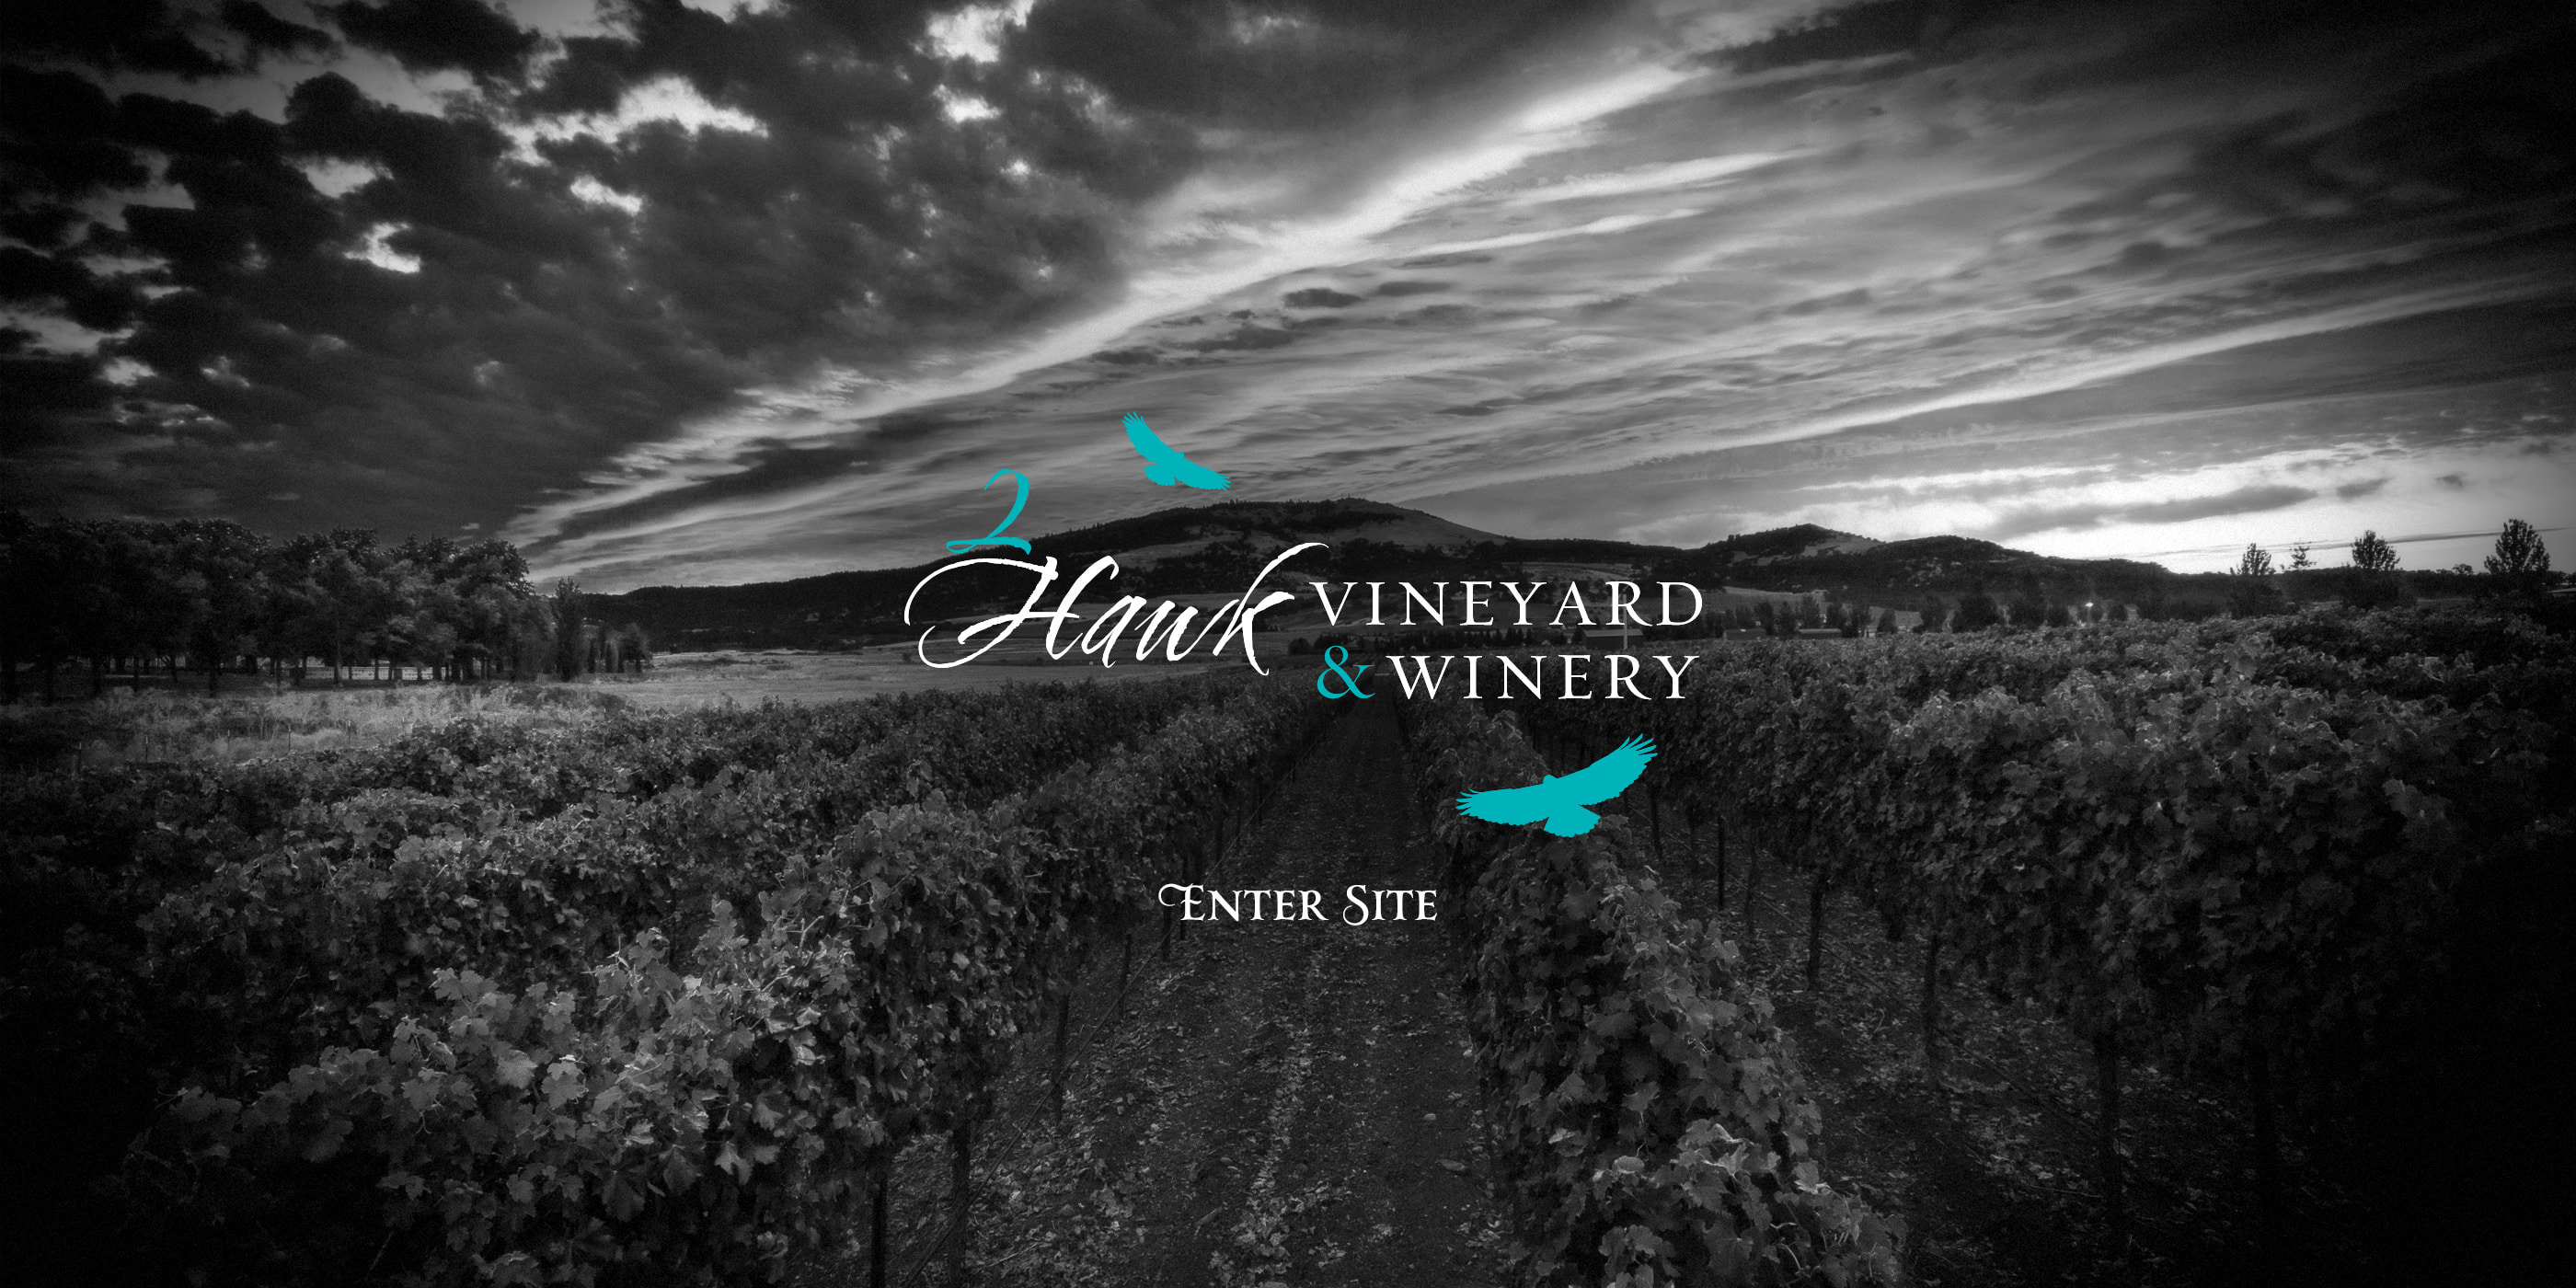 2Hawk Vineyard and Winery